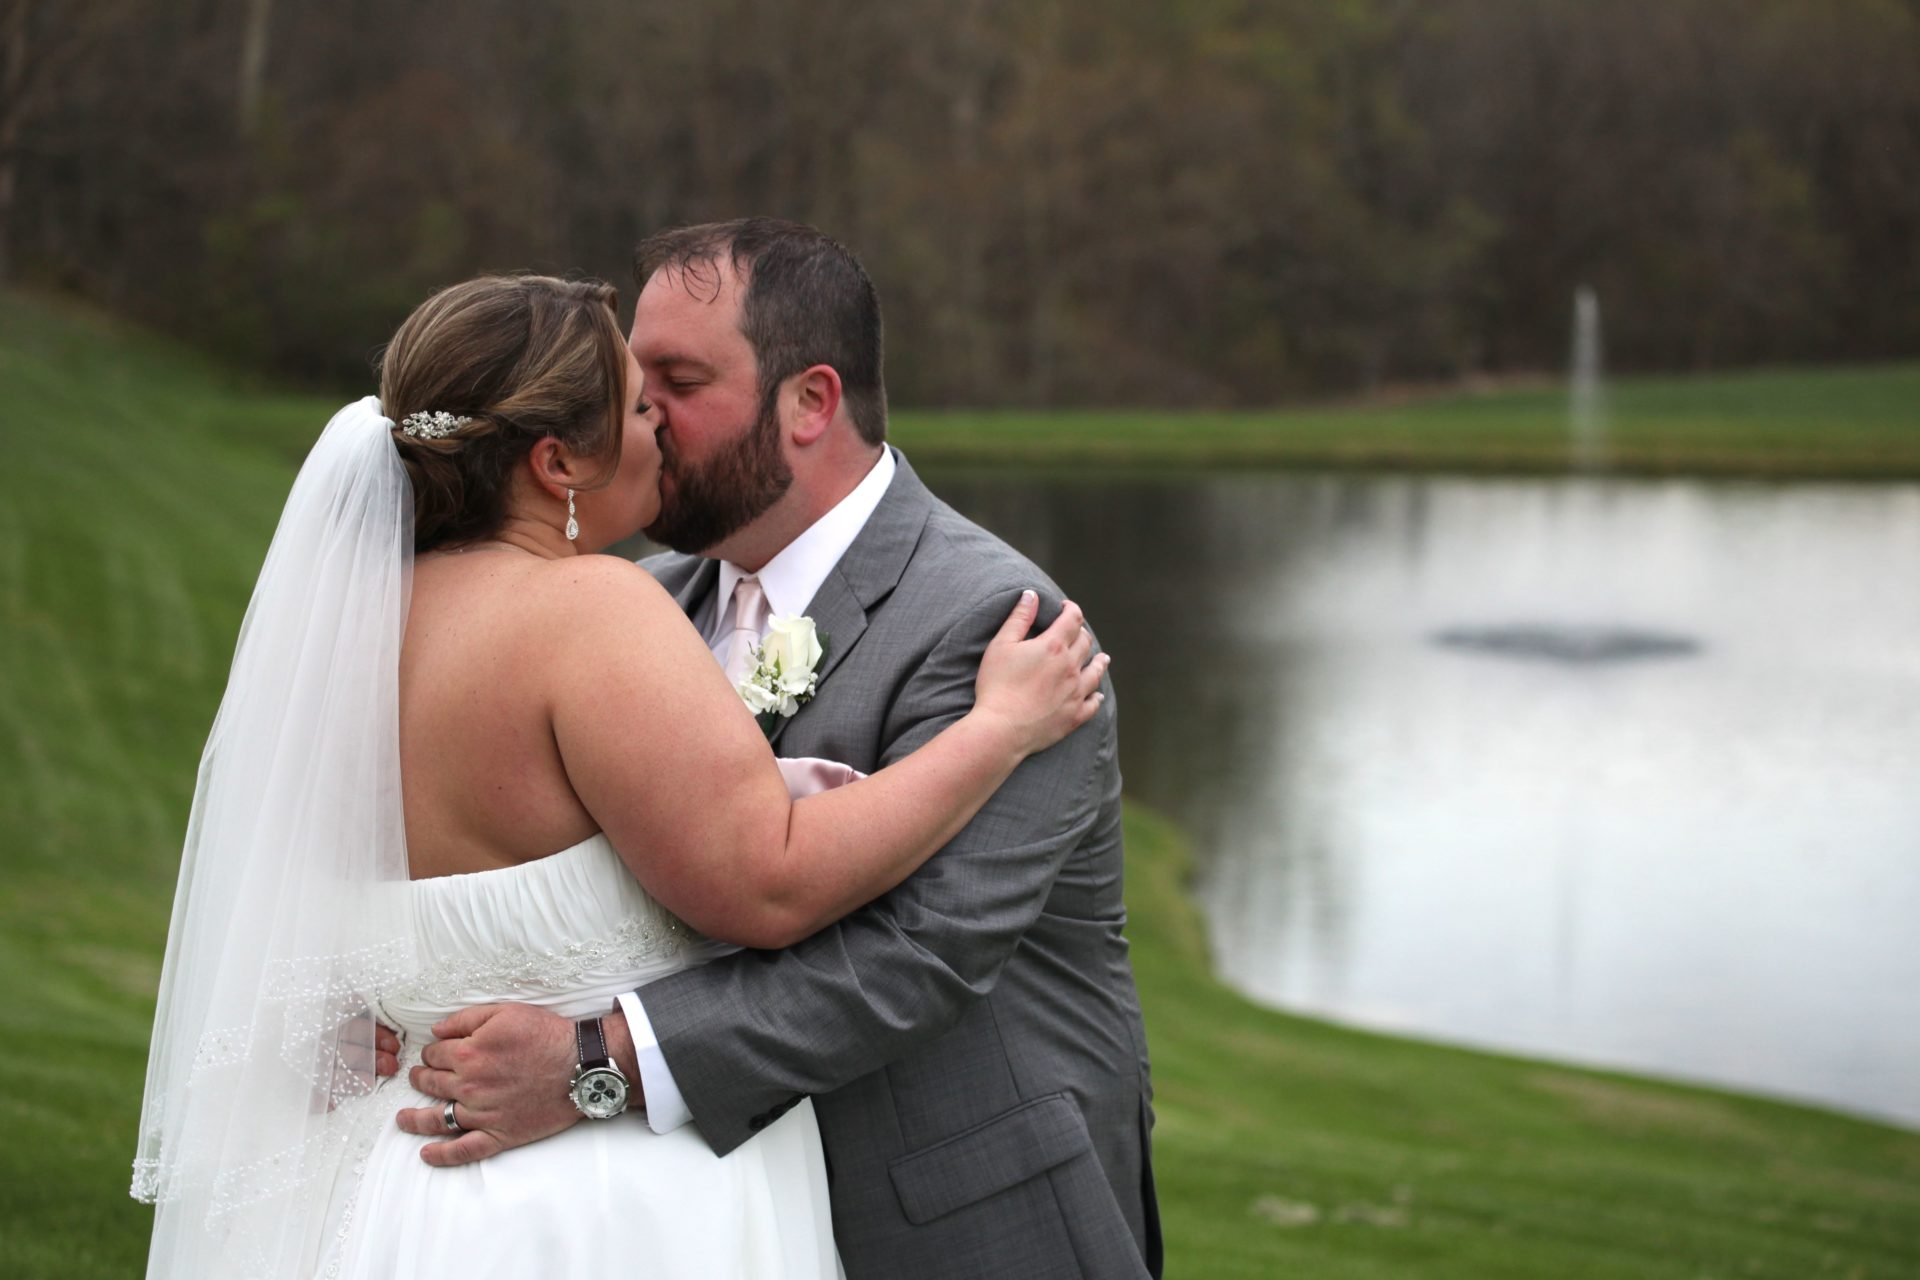 Bride and groom kiss by pond